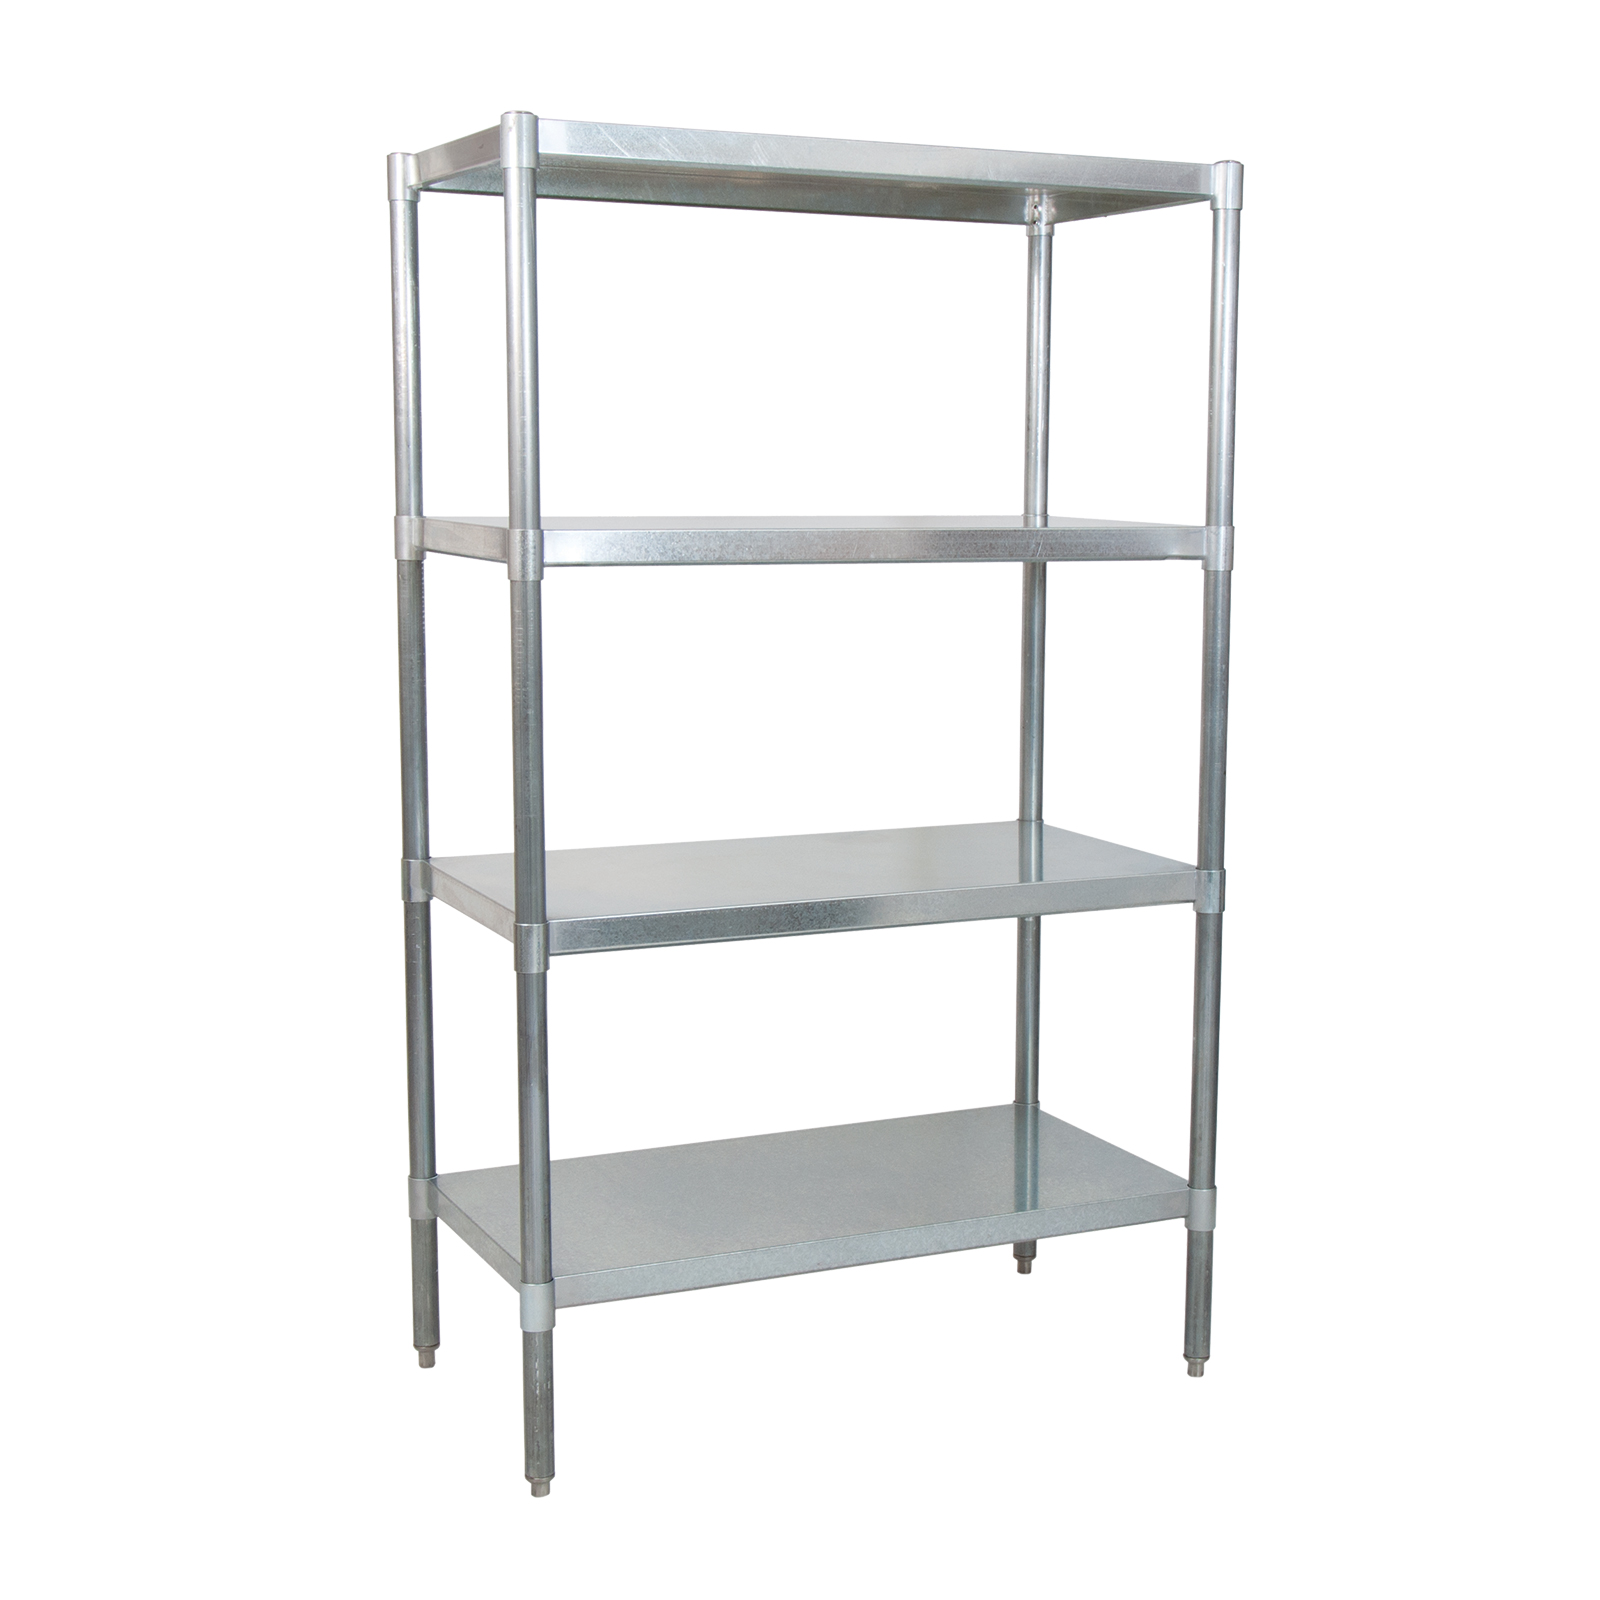 BK Resources SSU6-5524 shelving unit, solid flat